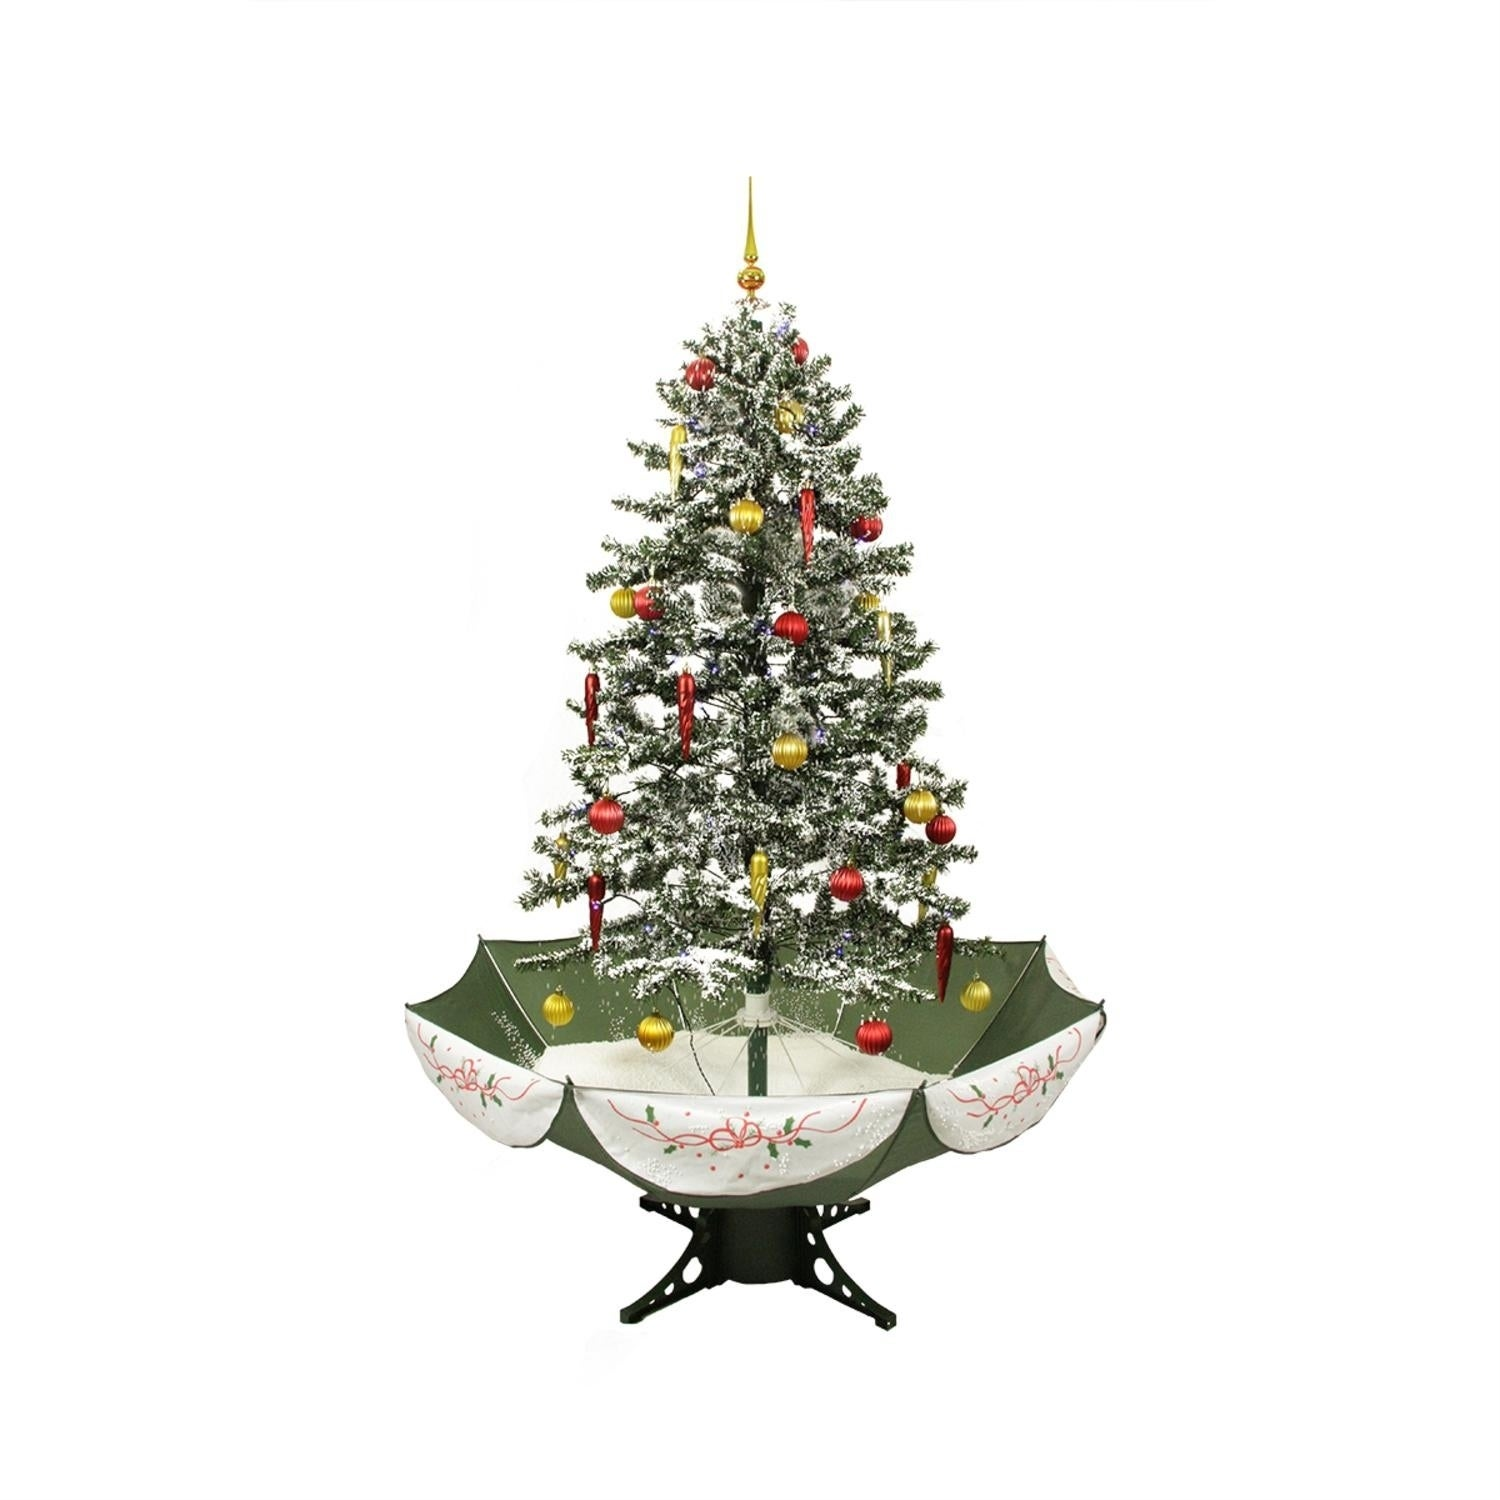 Shop 5.5' Pre-Lit Musical Snowing Artificial Christmas Tree - Blue LED Lights - Free Shipping Today - Overstock - 17289171